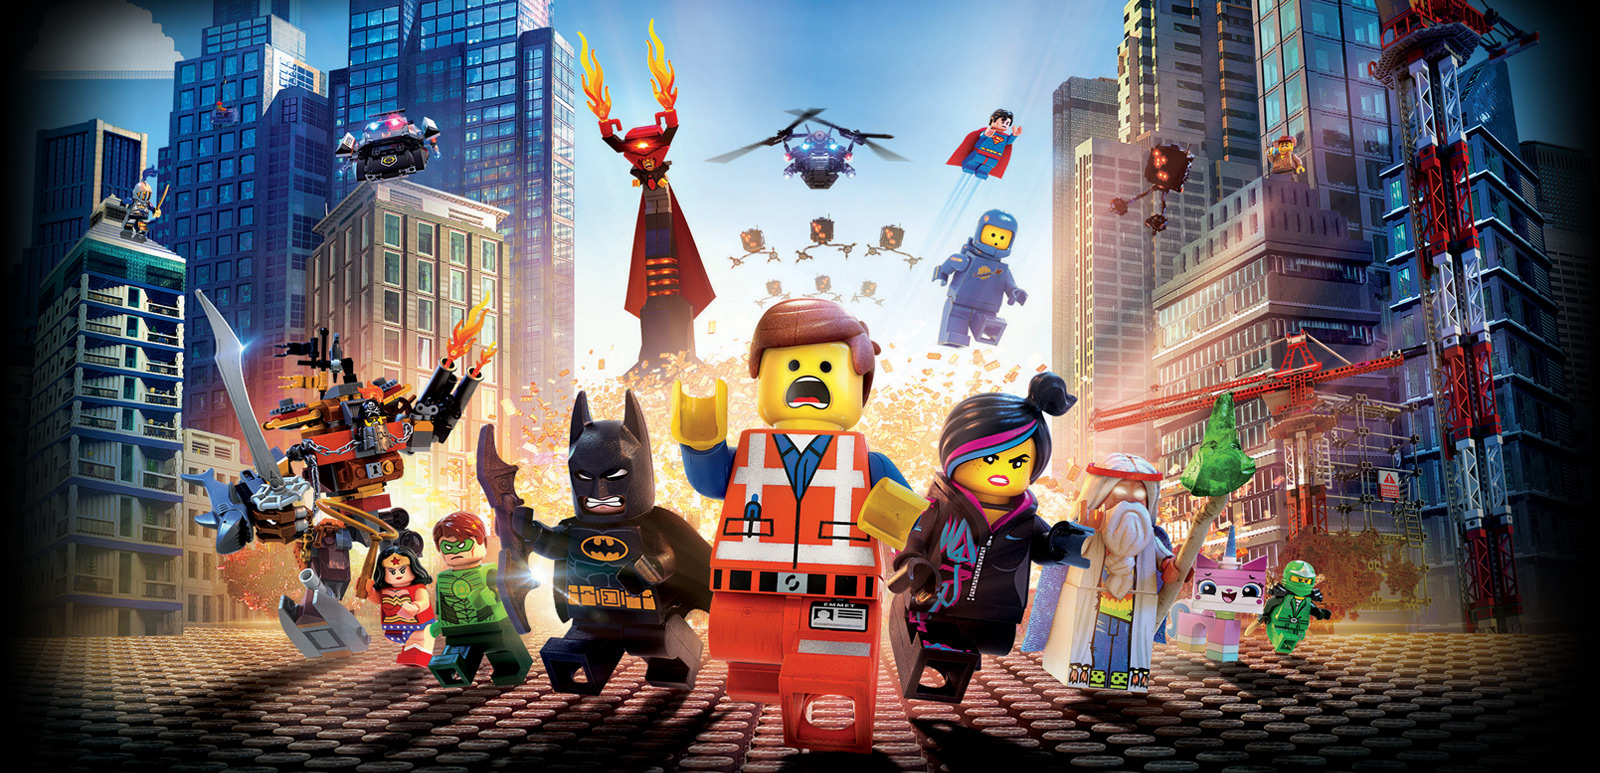 Pictures From The Lego Movie: The LEGO Movie Review